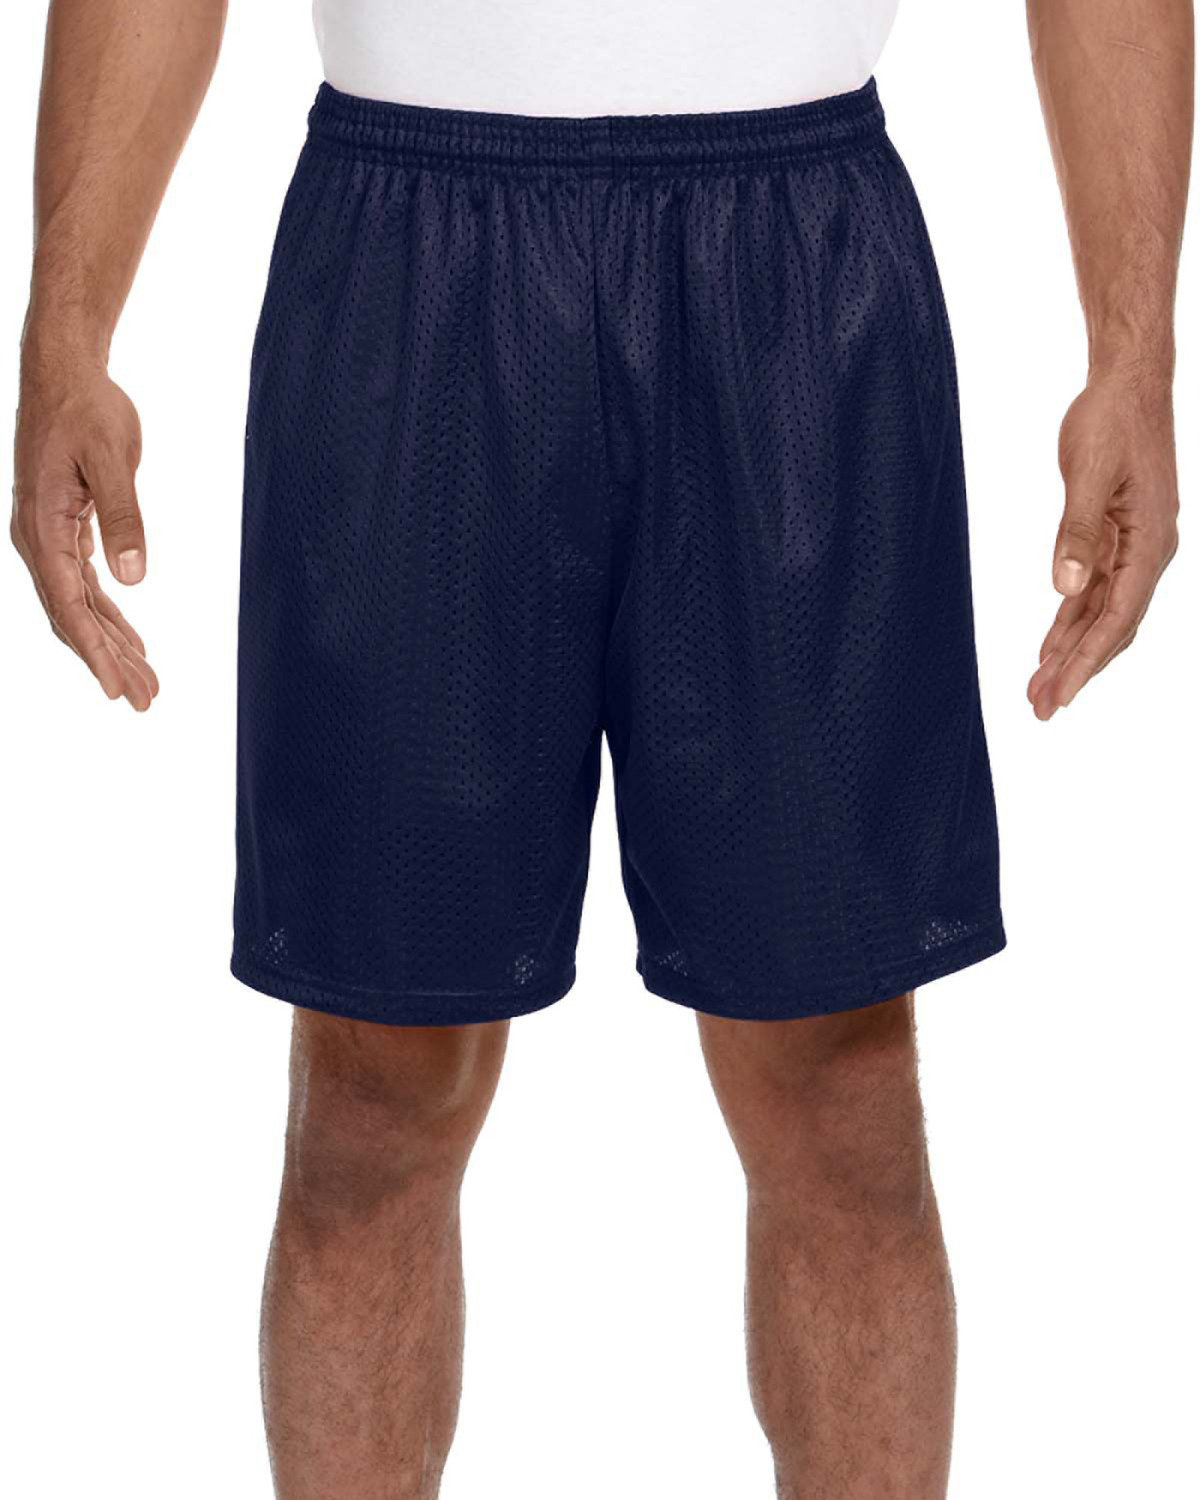 A4 Adult Seven Inch Inseam Mesh Short NAVY